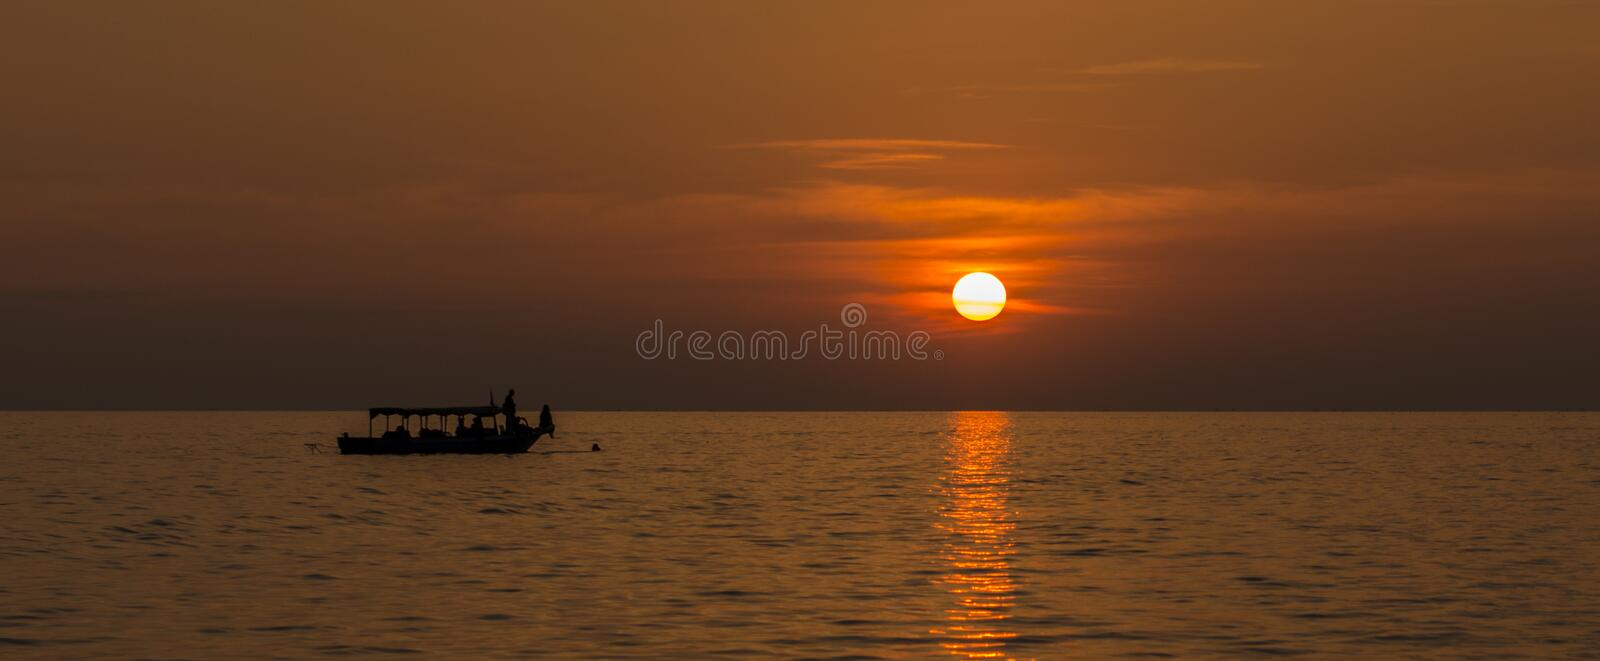 Sunset on the lake with a boat on the horizon. In warm colors stock images